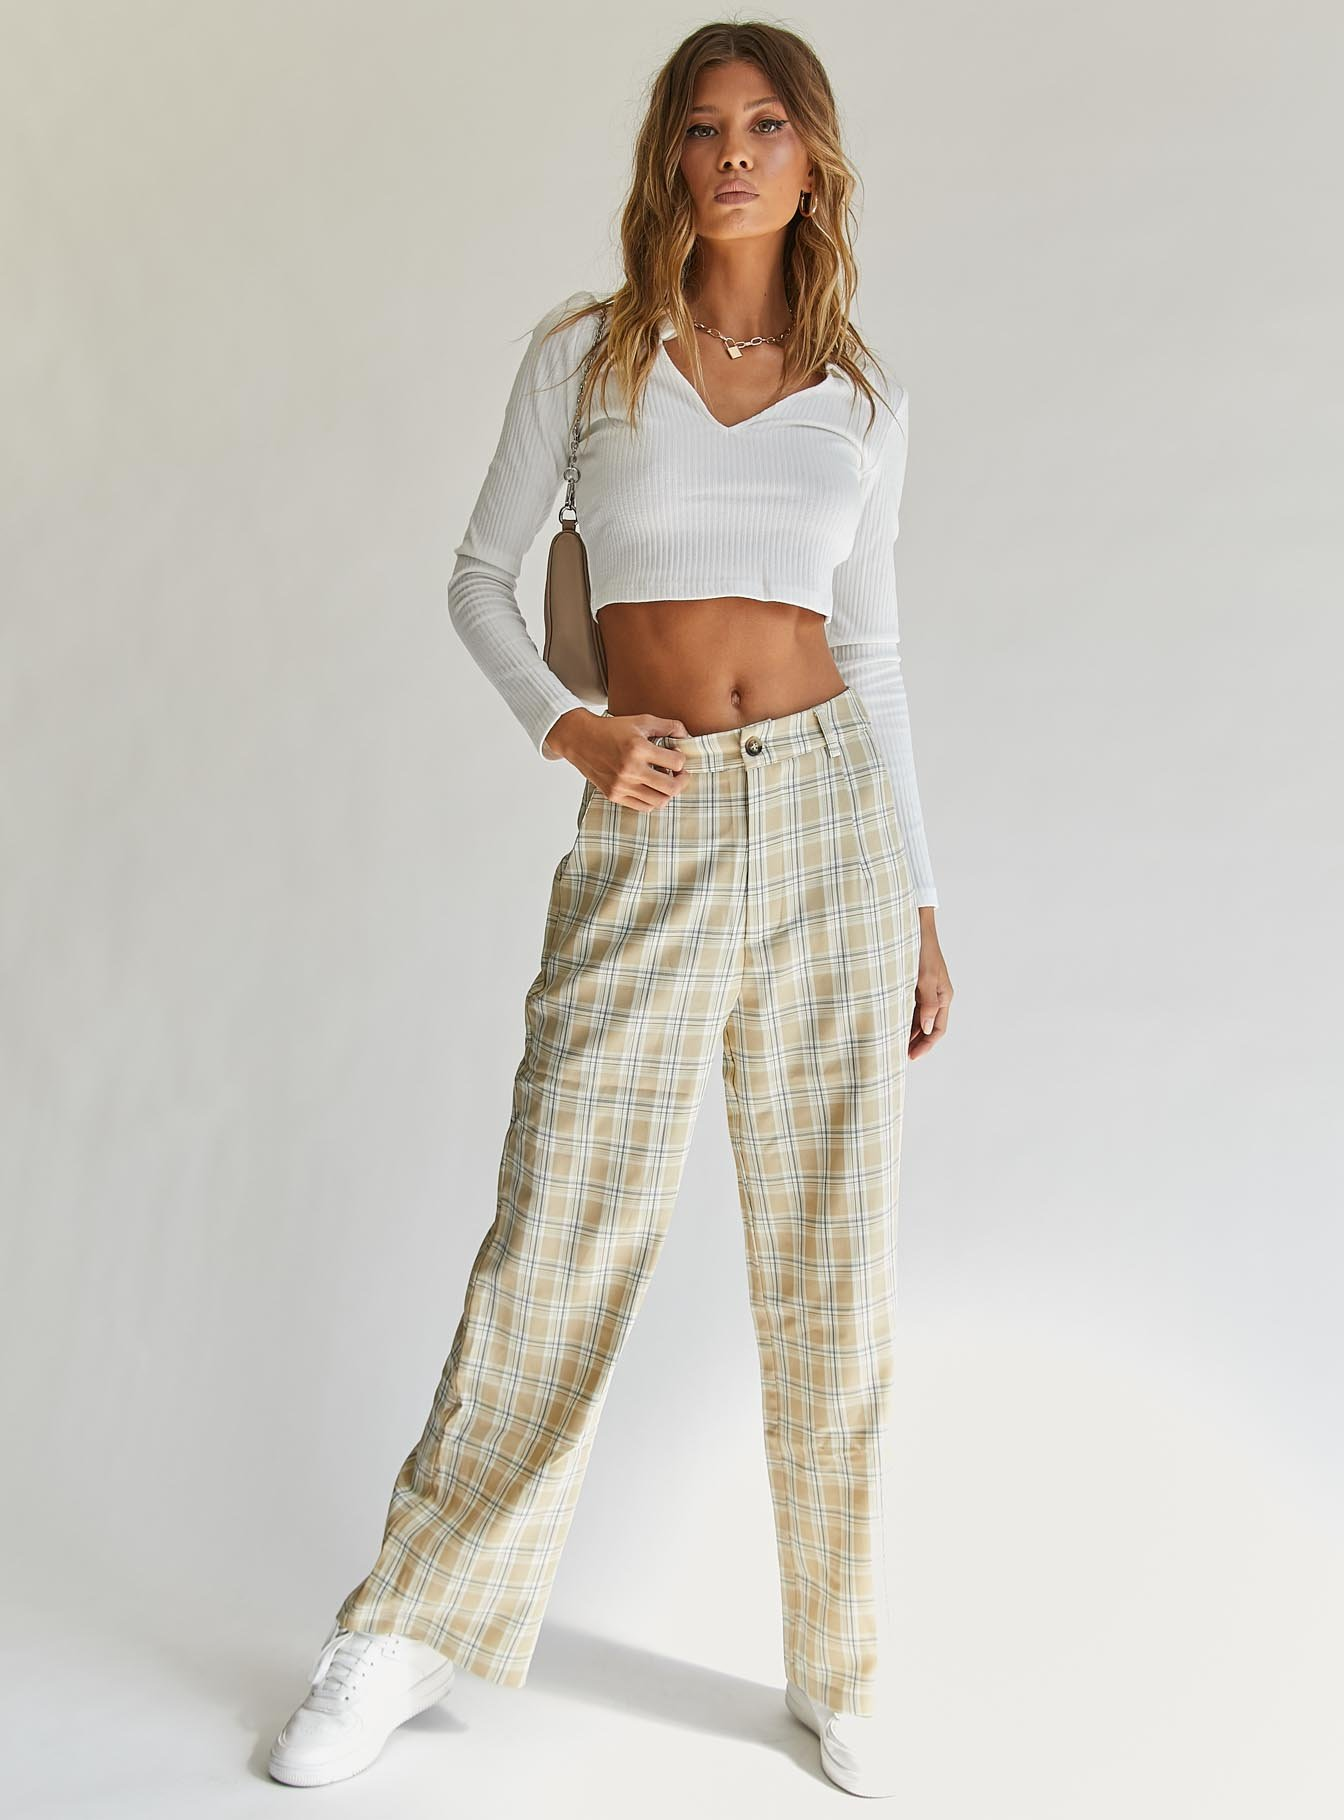 Sale - Pants (Side B)